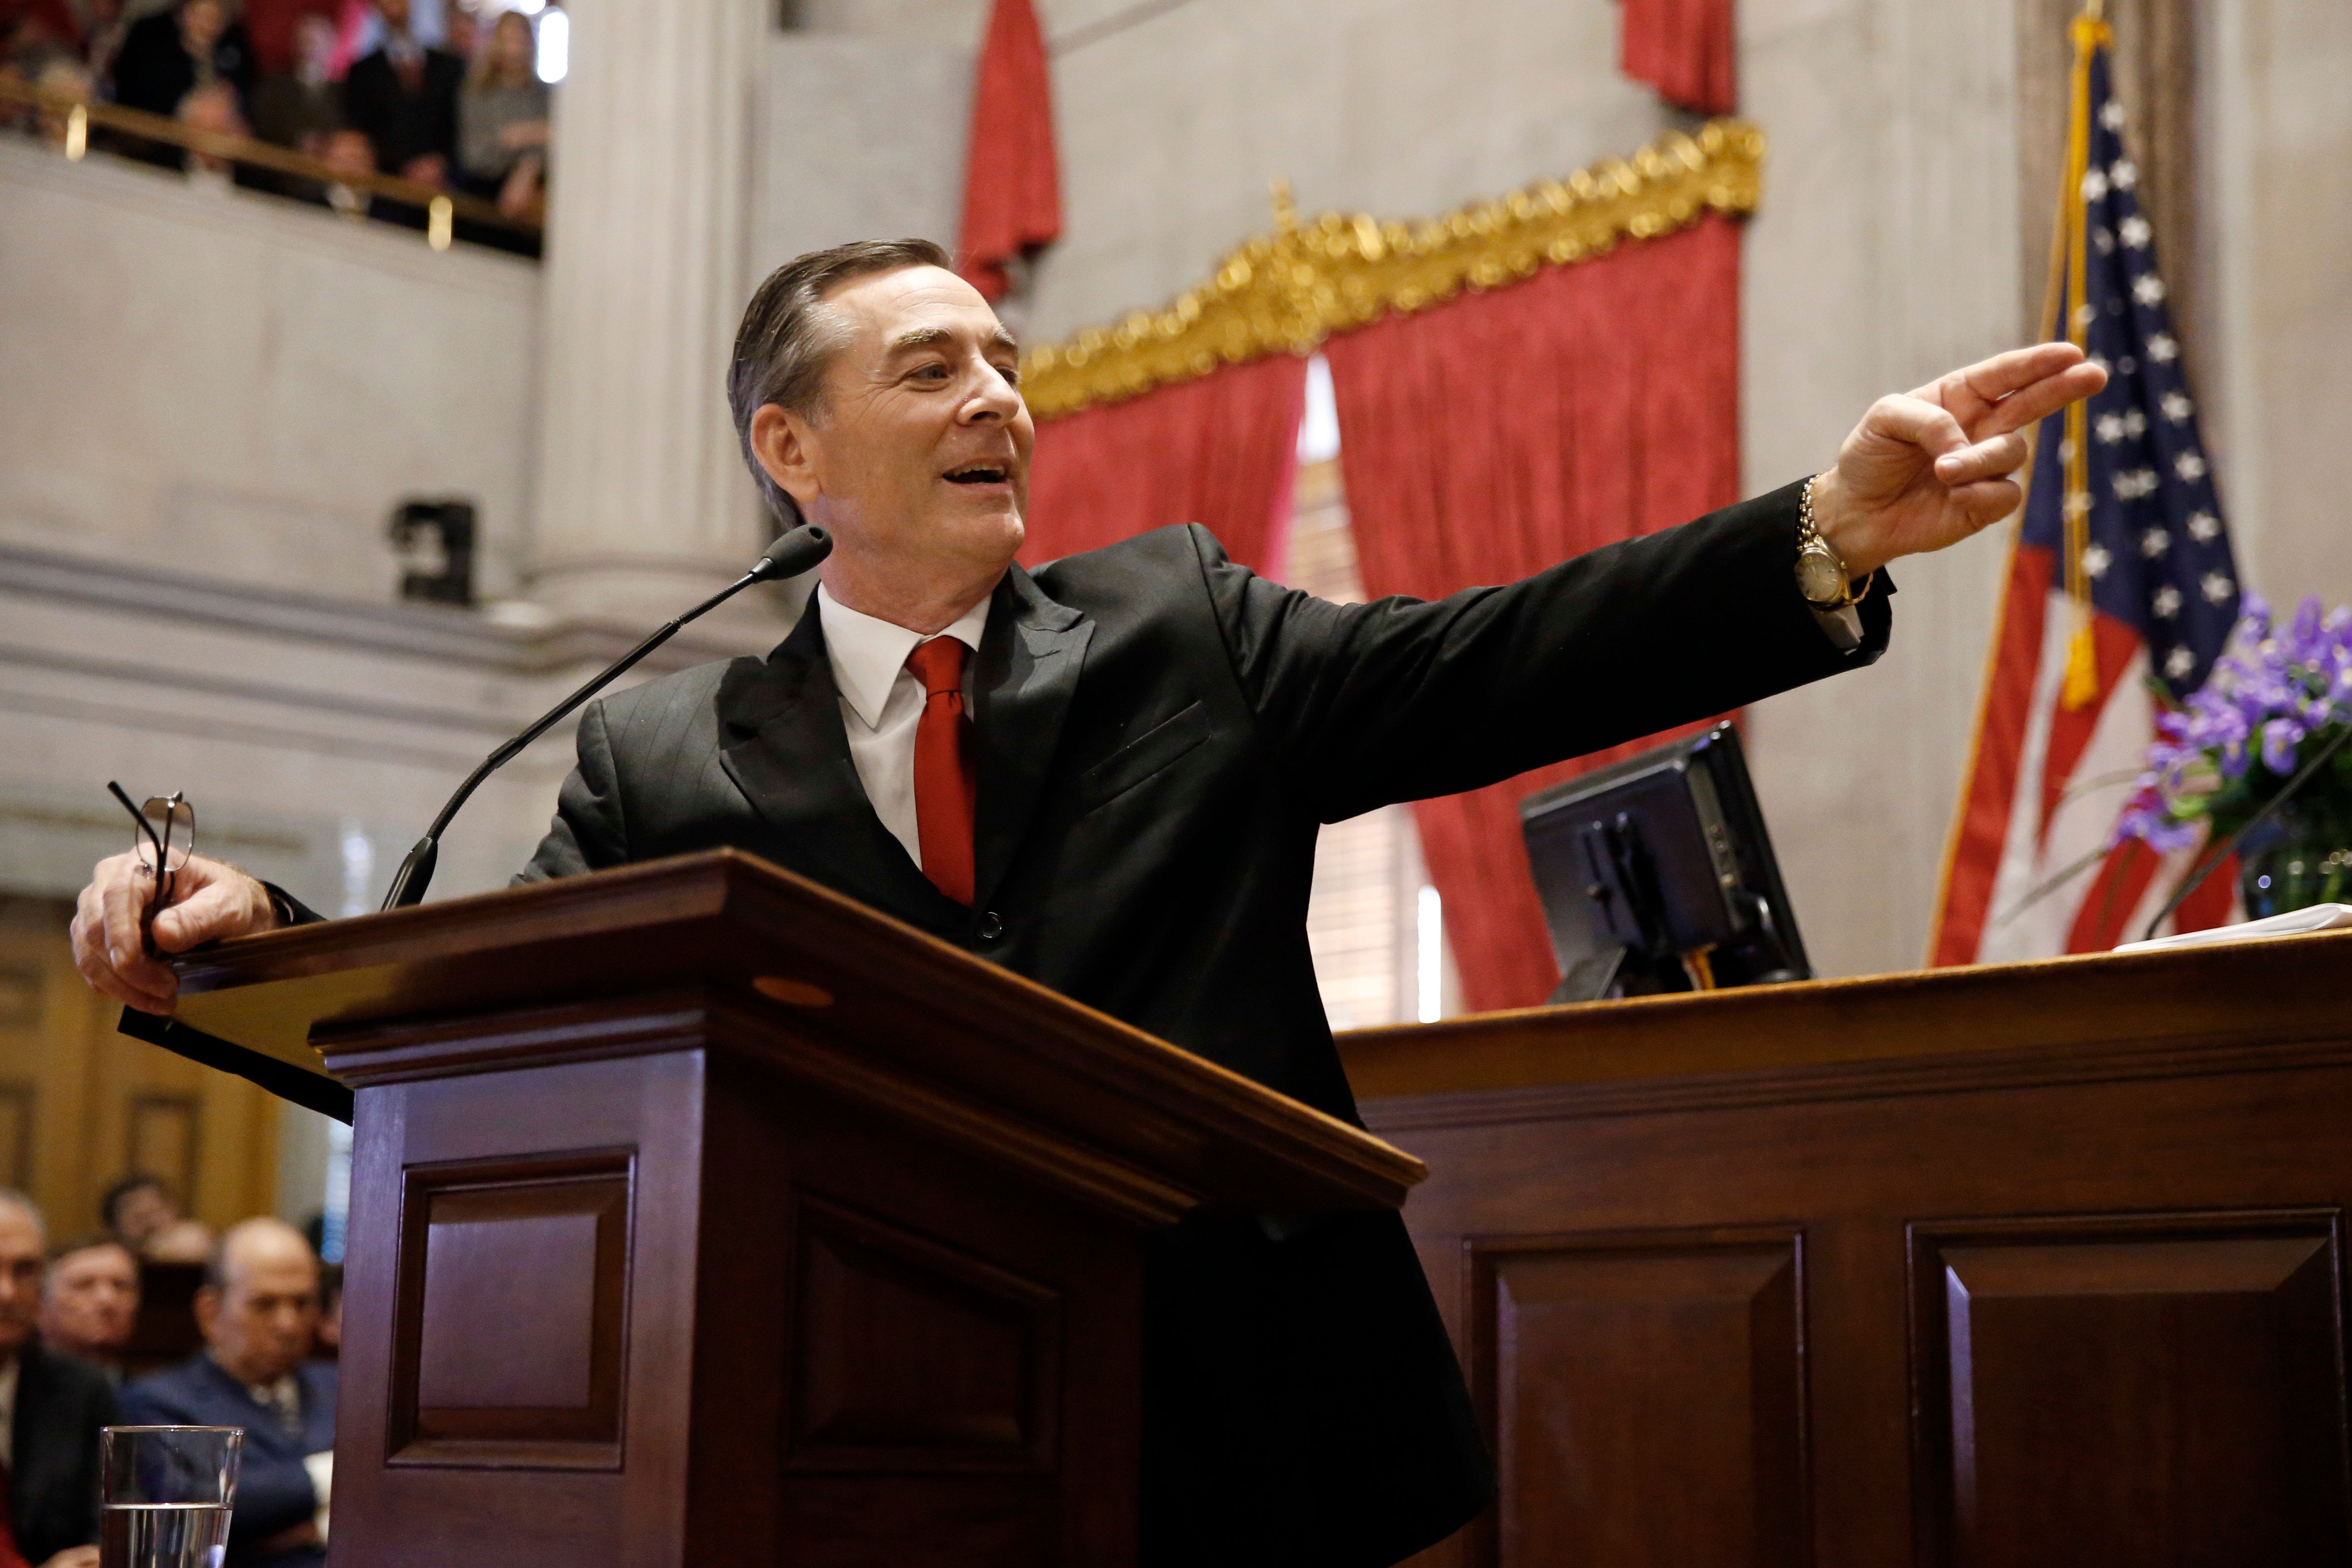 House Speaker Glen Casada, R-Franklin, speaks after being sworn in on the opening day of the 111th General Assembly, Tuesday, Jan. 8, 2019, in Nashville, Tenn. (AP Photo/Mark Humphrey)